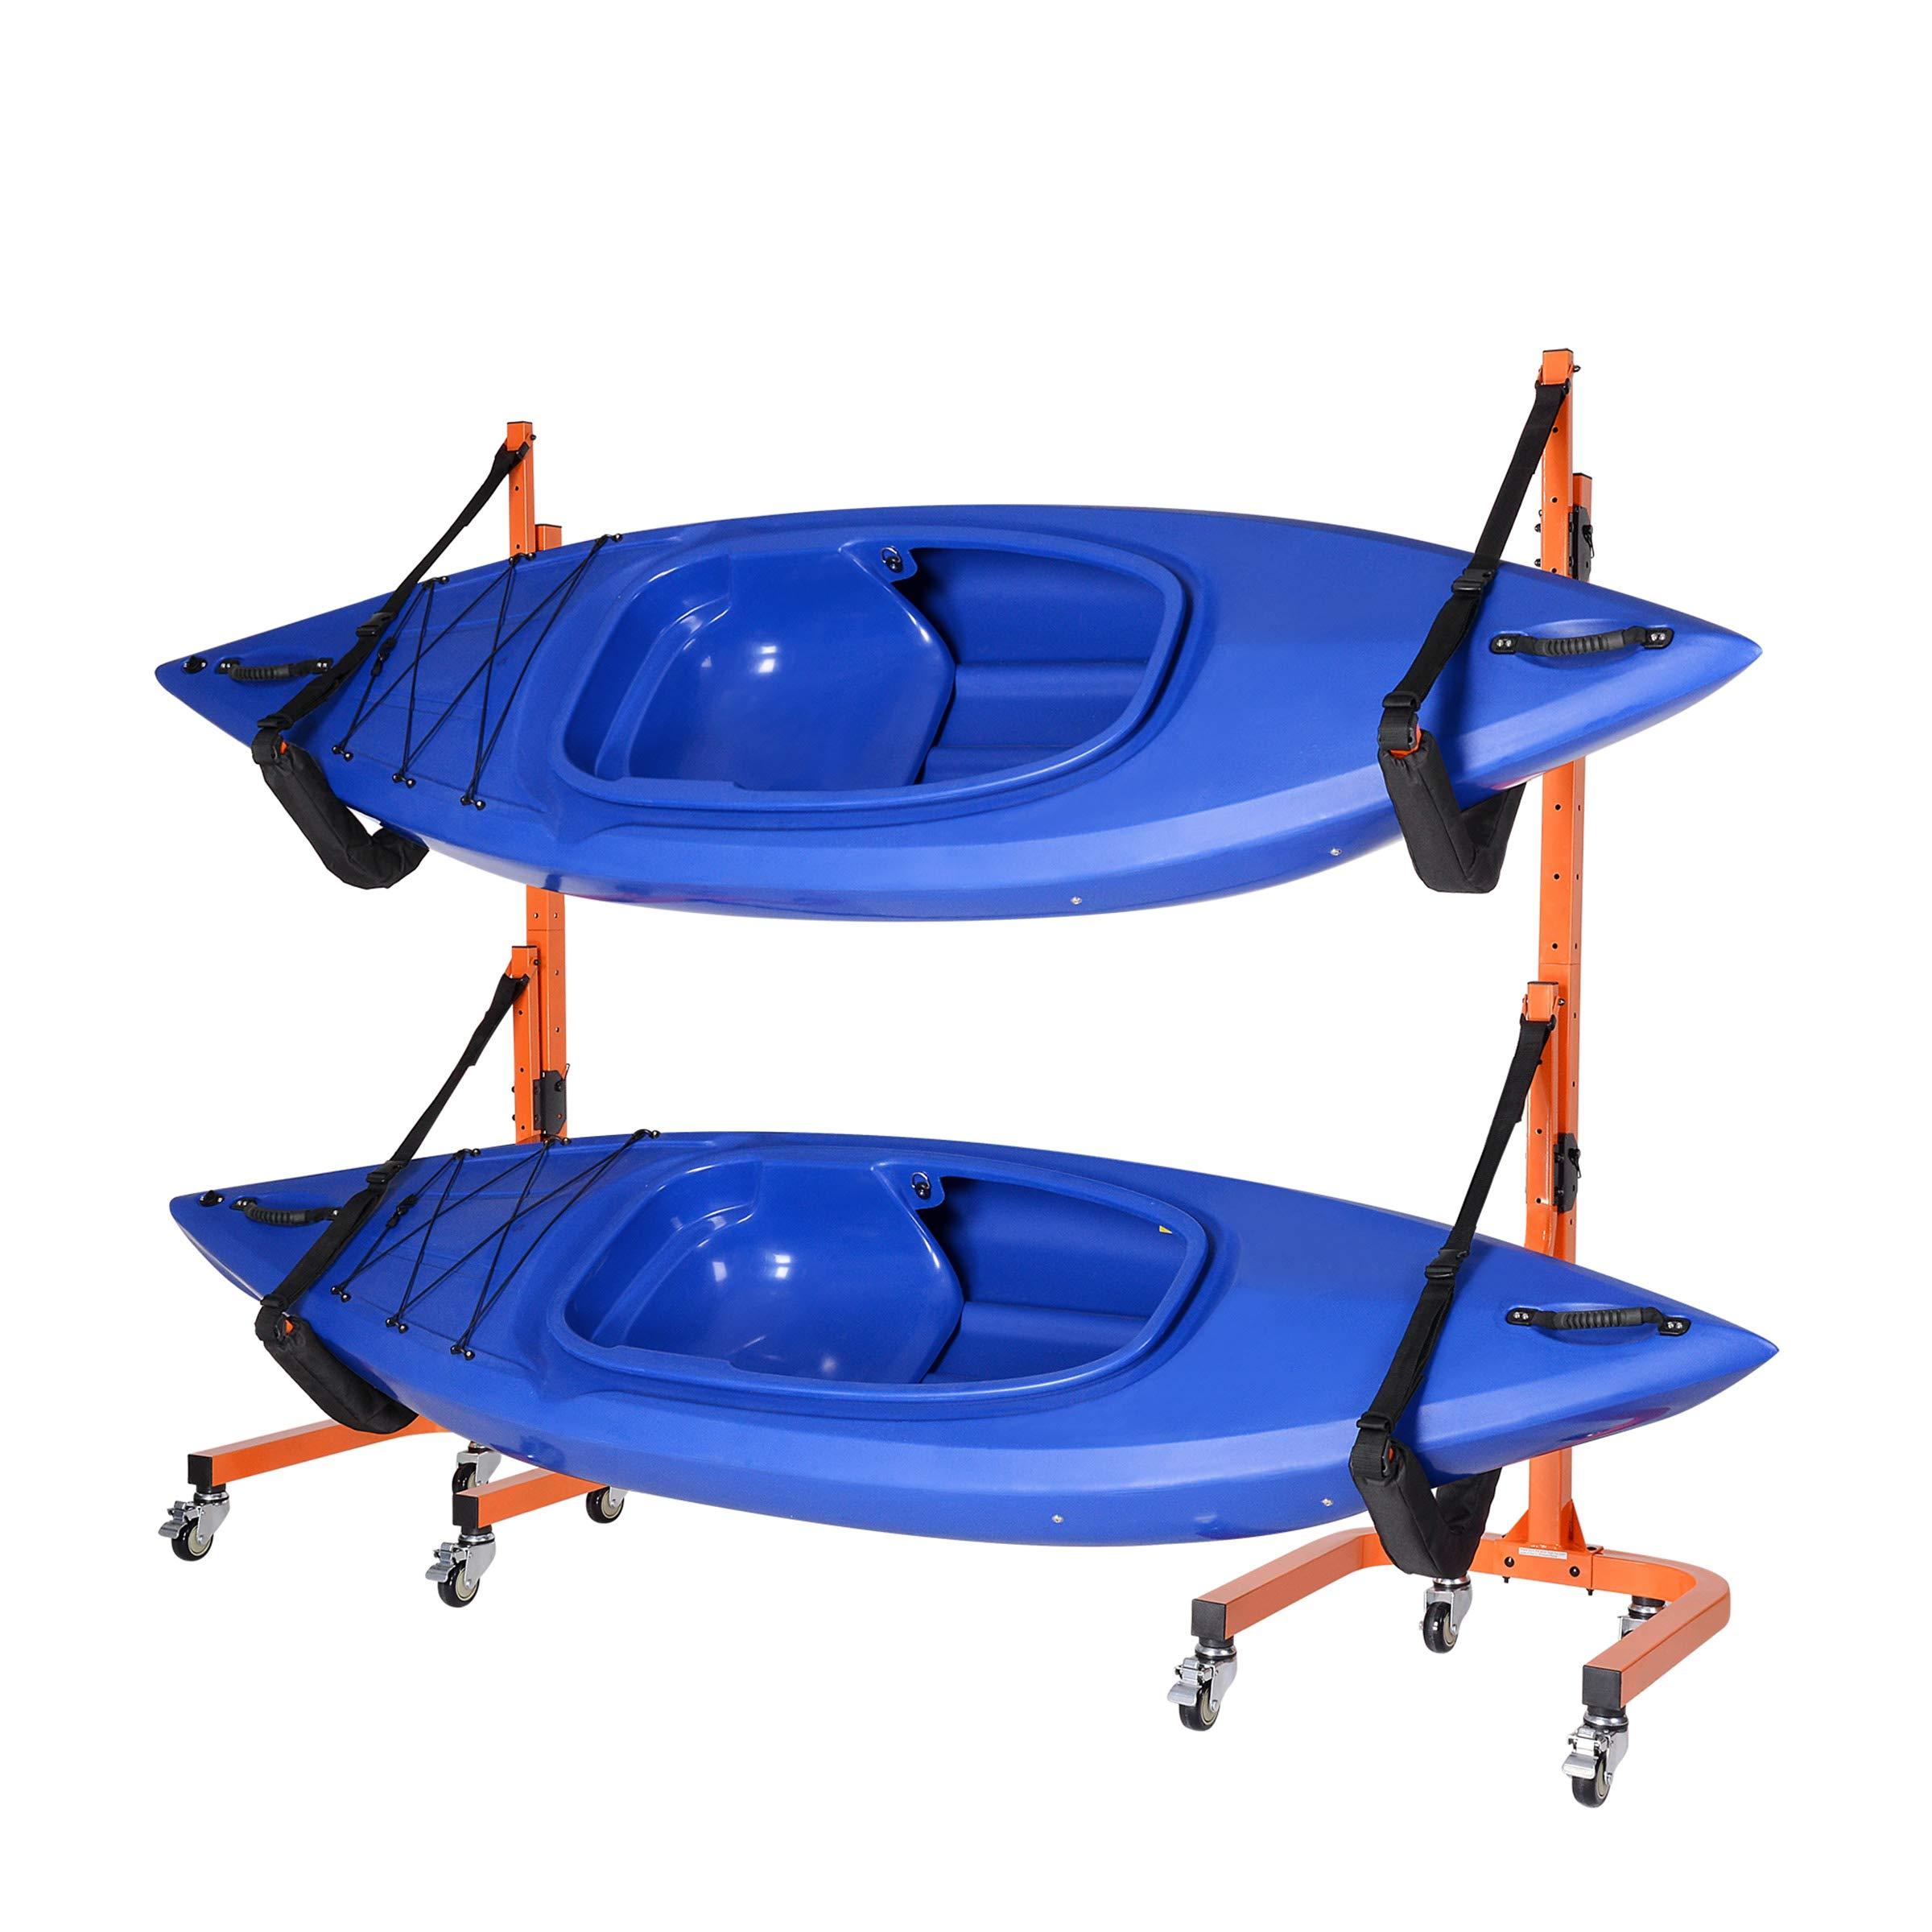 RAD Sportz Rolling Kayaks Rack Storage- Self Standing Two Kayaks Cradles with Adjustable Safety Straps and Wheels for Mobility- Indoor Outdoor use by RAD Sportz